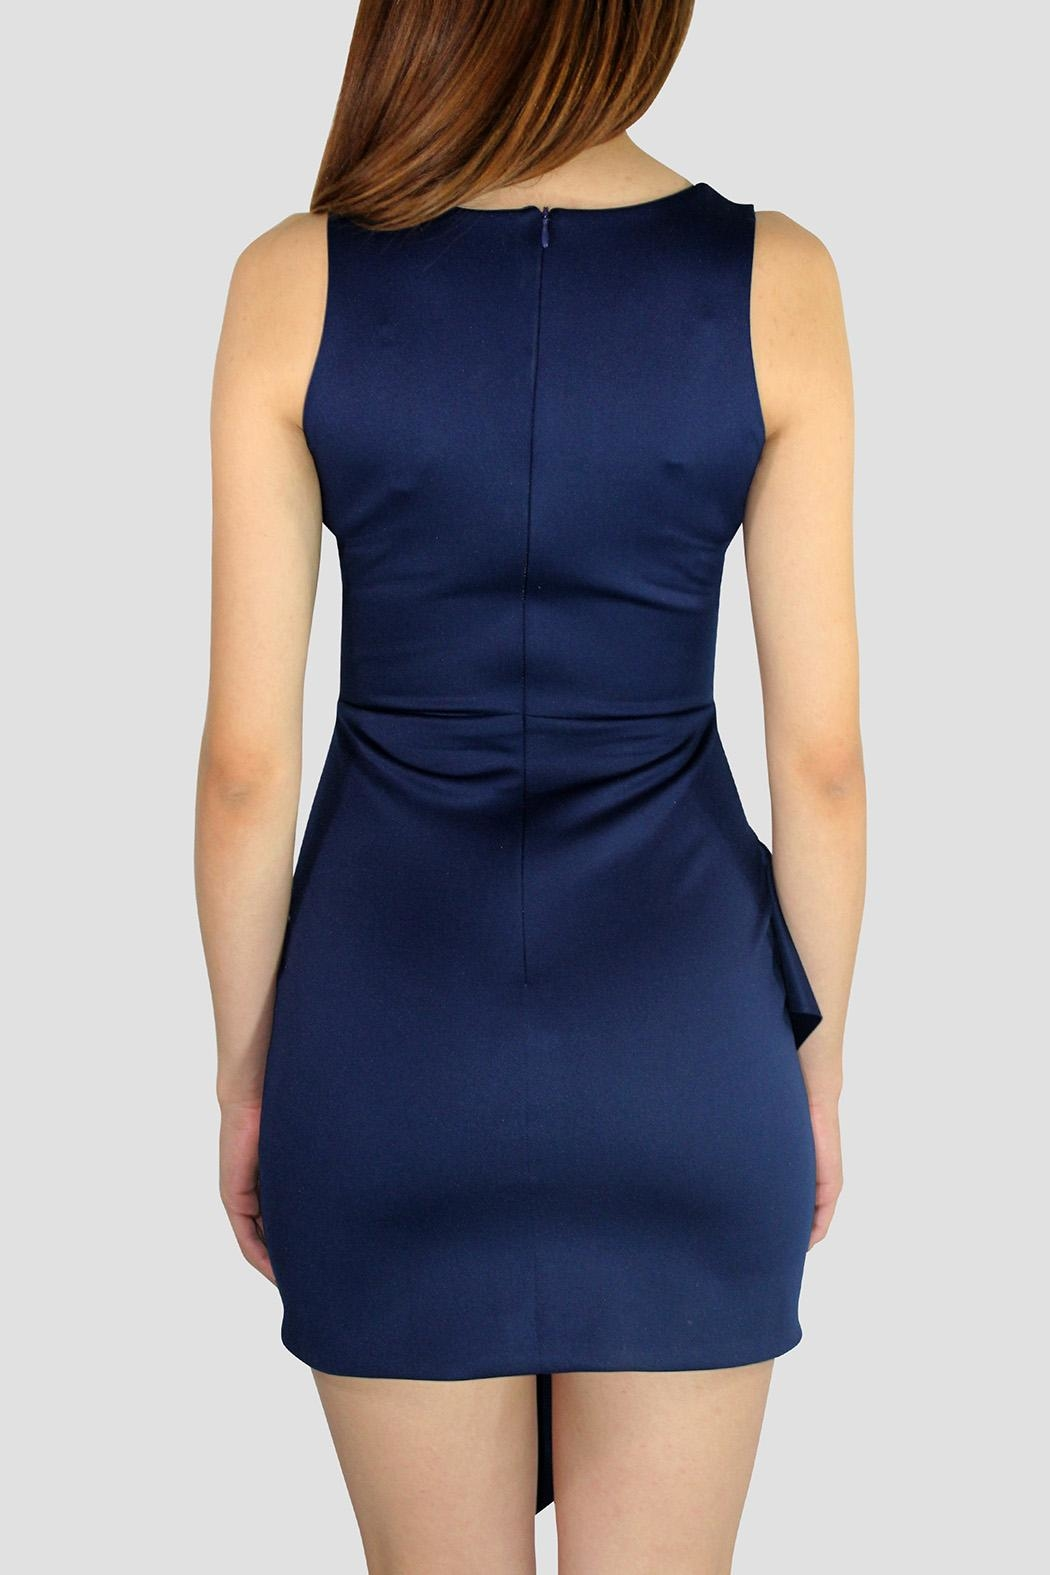 SoZu Asymmetric End Dress - Side Cropped Image